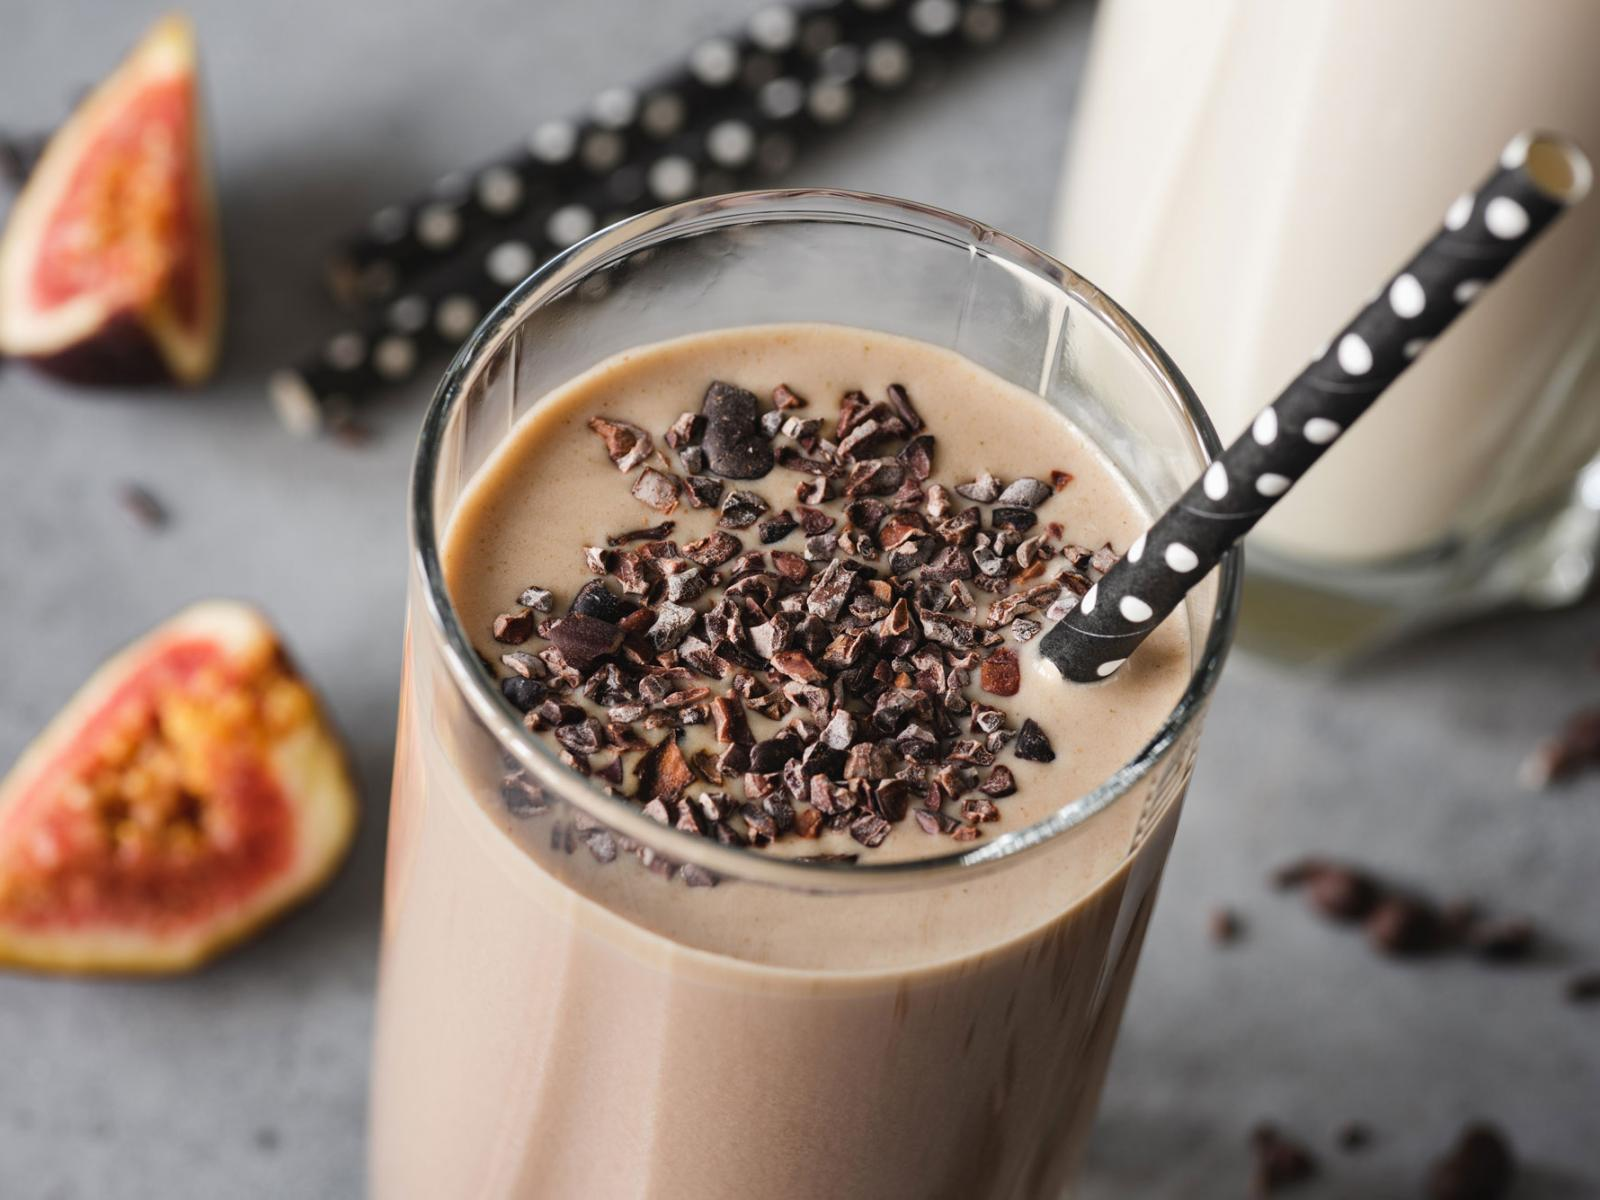 Farmers Low-Fat 1% Chocolate Milk Smoothie Recipe